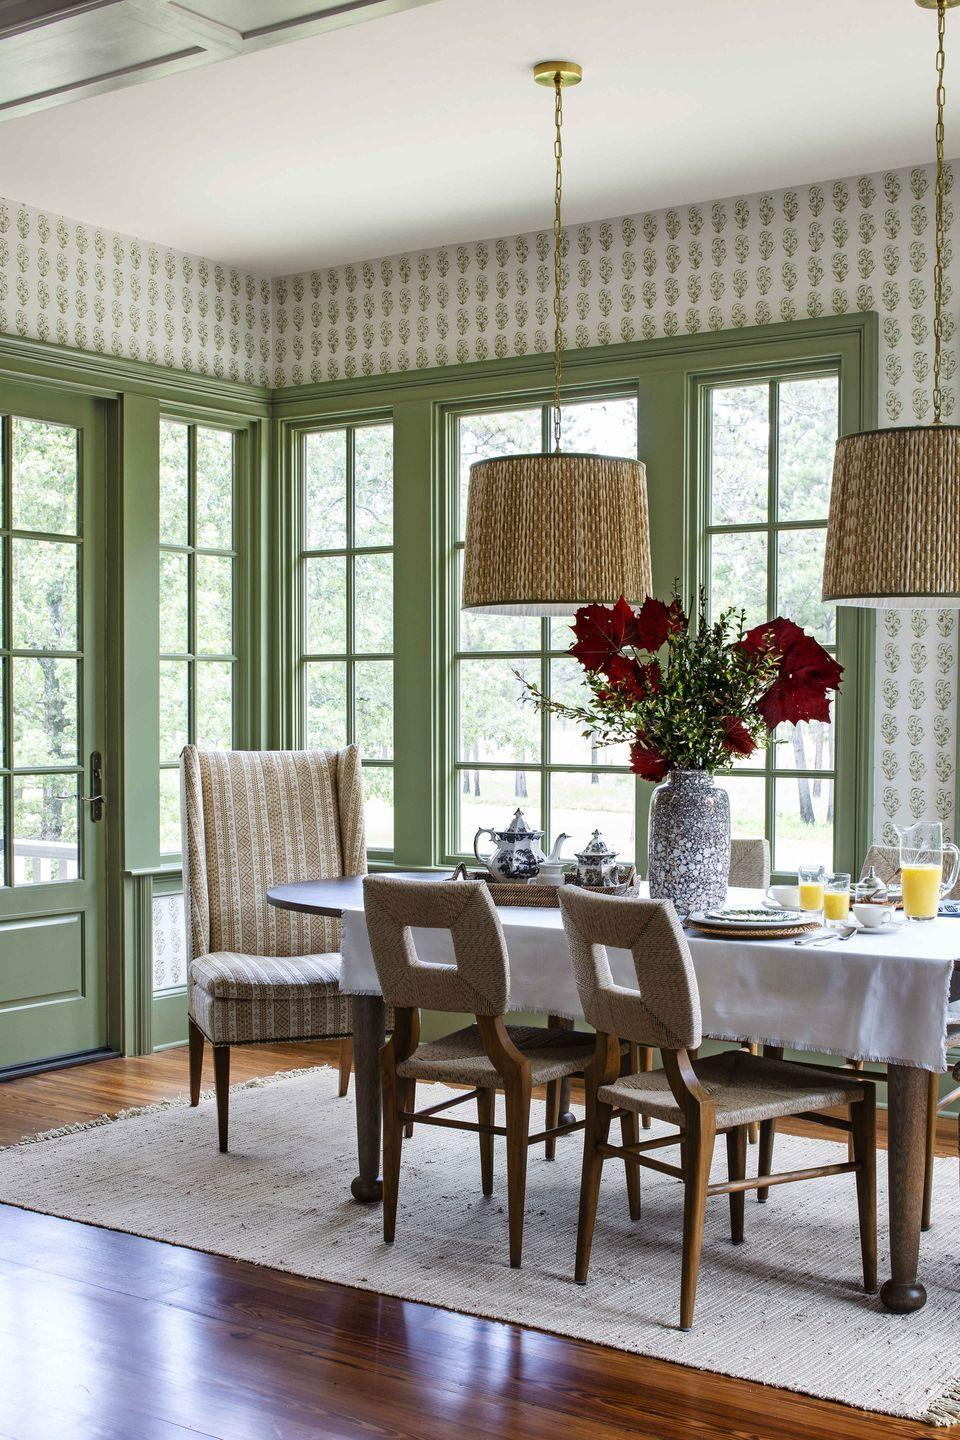 """<p>The coziness of verdant block-print wallpaper (<a href=""""https://lesindiennes.com/"""" rel=""""nofollow noopener"""" target=""""_blank"""" data-ylk=""""slk:Les Indiennes"""" class=""""link rapid-noclick-resp"""">Les Indiennes</a>) and a textured rug (<a href=""""https://annieselke.com/c/dashandalbert"""" rel=""""nofollow noopener"""" target=""""_blank"""" data-ylk=""""slk:Dash & Albert"""" class=""""link rapid-noclick-resp"""">Dash & Albert</a>) welcomes guests to mingle and enjoy the incredible views from this <a href=""""https://www.veranda.com/decorating-ideas/a29416524/andrew-howard-south-caroline-home-tour/"""" rel=""""nofollow noopener"""" target=""""_blank"""" data-ylk=""""slk:South Carolina breakfast room"""" class=""""link rapid-noclick-resp"""">South Carolina breakfast room</a>. Designer <a href=""""http://www.andrewjhoward.com/"""" rel=""""nofollow noopener"""" target=""""_blank"""" data-ylk=""""slk:Andrew Howard"""" class=""""link rapid-noclick-resp"""">Andrew Howard</a> paired the rustic side chairs from <a href=""""https://www.hollywoodathome.com/"""" rel=""""nofollow noopener"""" target=""""_blank"""" data-ylk=""""slk:Hollywood at Home"""" class=""""link rapid-noclick-resp"""">Hollywood at Home</a> with a host chair covered in <a href=""""https://www.michaelsmithinc.com/furniture-and-fabrics/fabrics"""" rel=""""nofollow noopener"""" target=""""_blank"""" data-ylk=""""slk:Jasper"""" class=""""link rapid-noclick-resp"""">Jasper</a> fabric. </p>"""